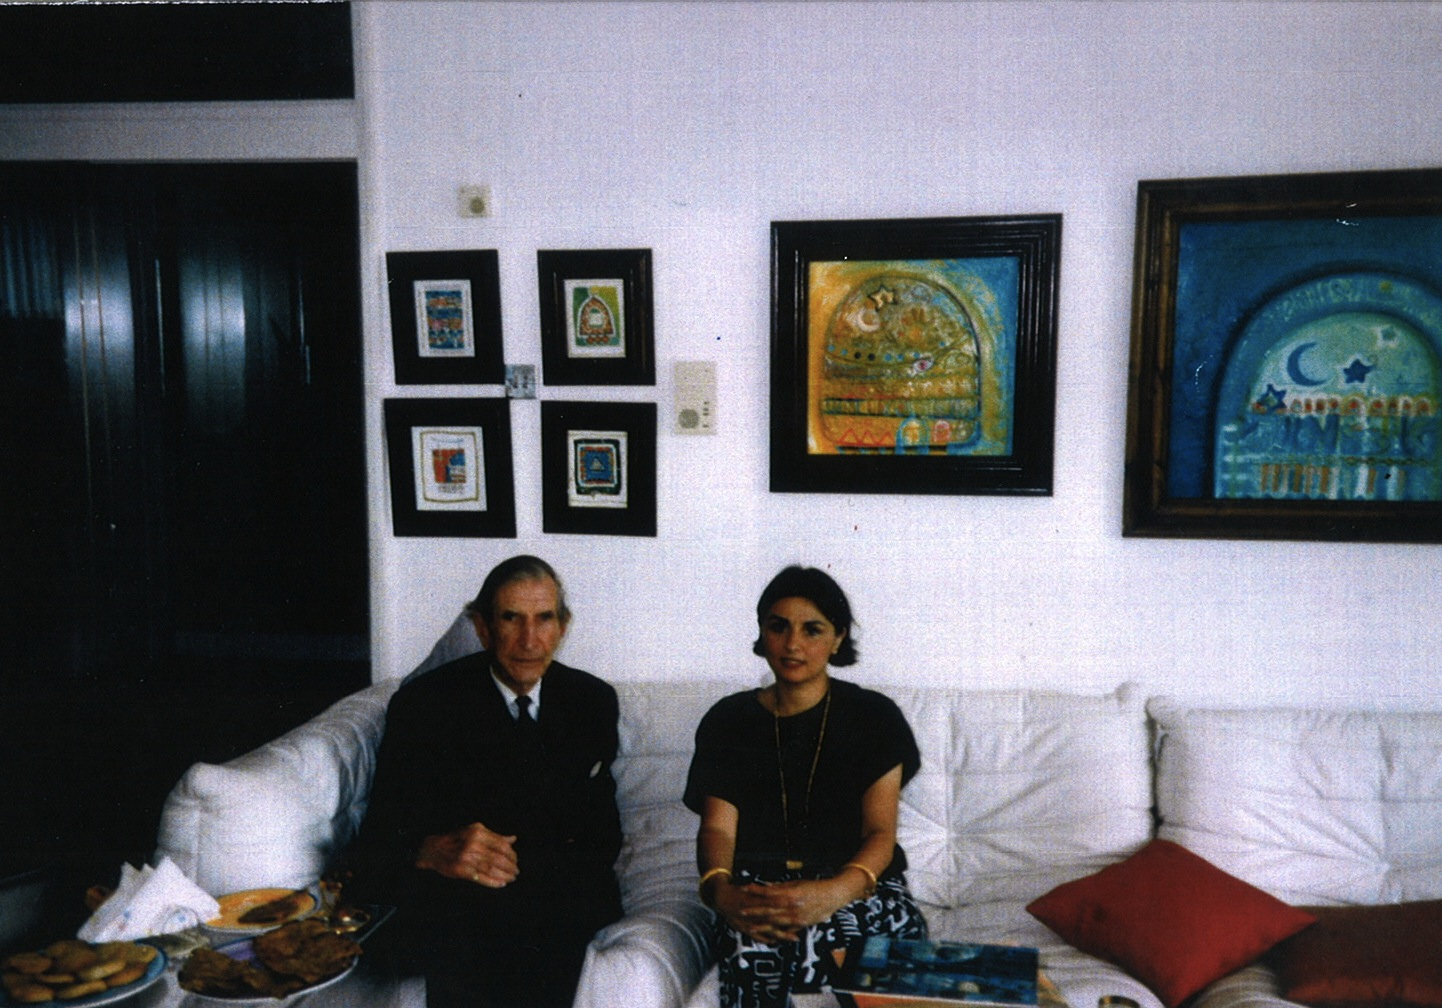 Wilfred Thesiger   epic meeting in preparation for  Strokes of Genius: Contemporary Iraqi Art  1995